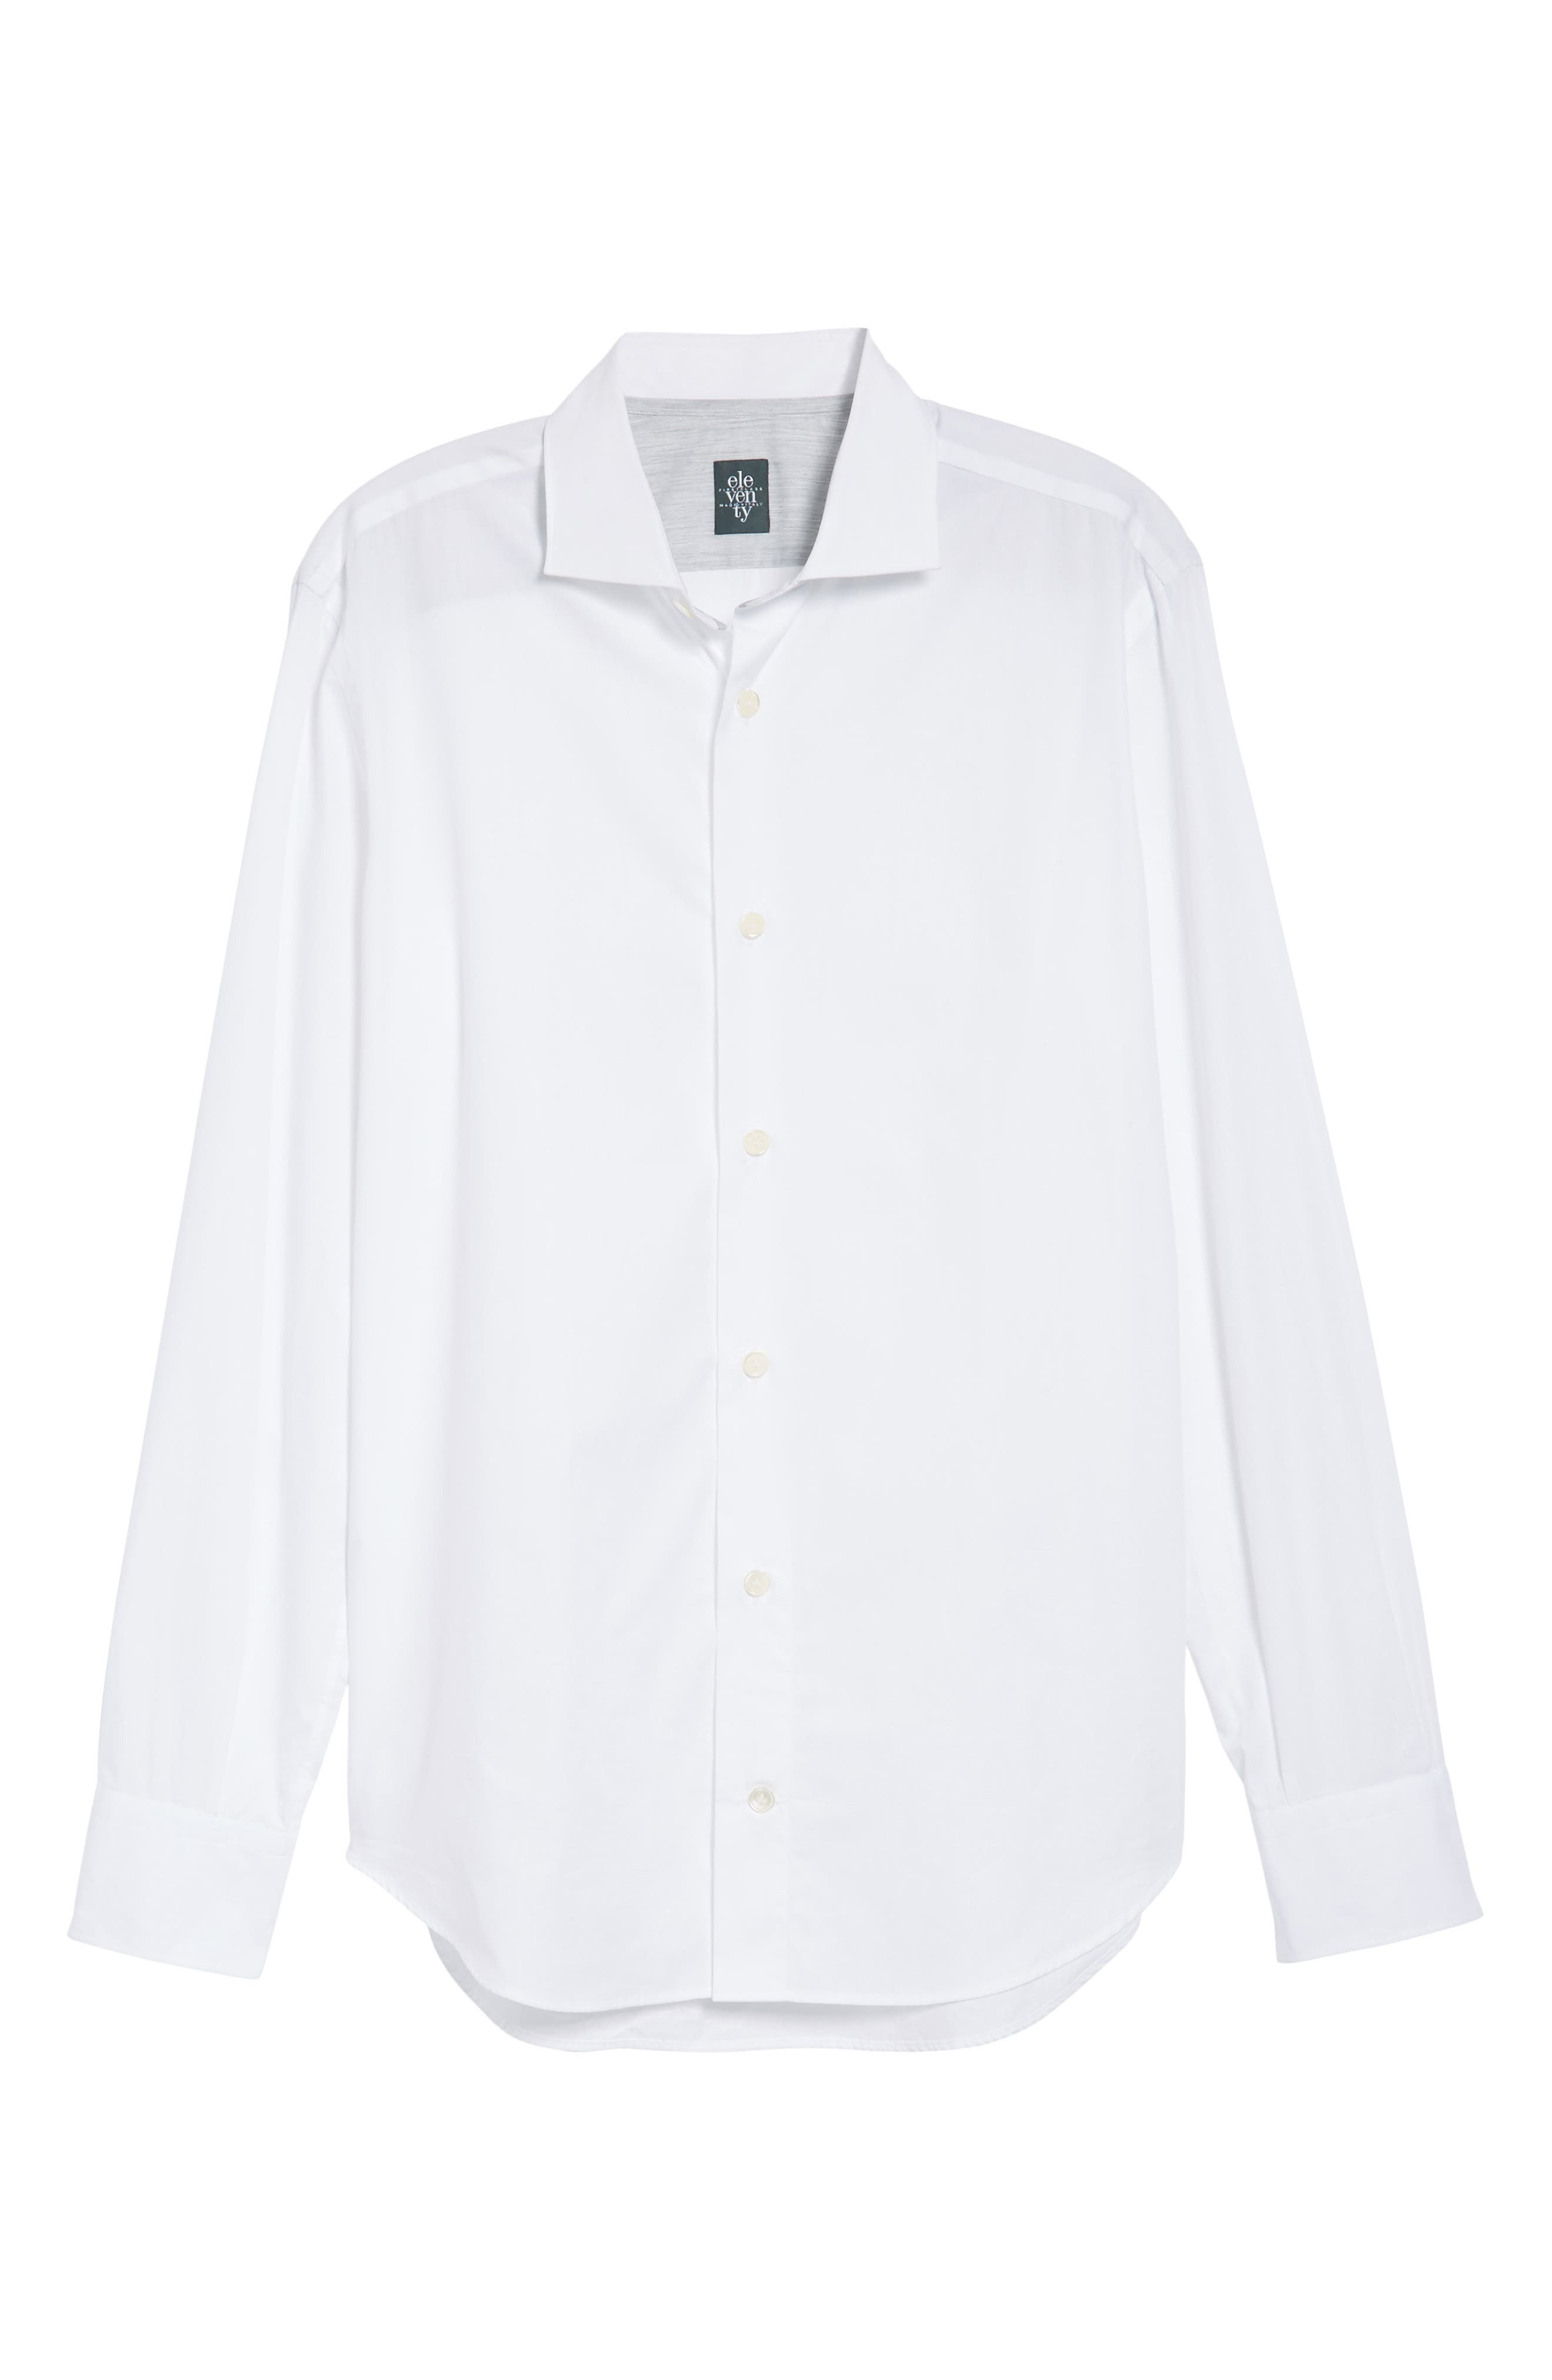 Trim Fit Sport Shirt,                             Alternate thumbnail 6, color,                             WHITE